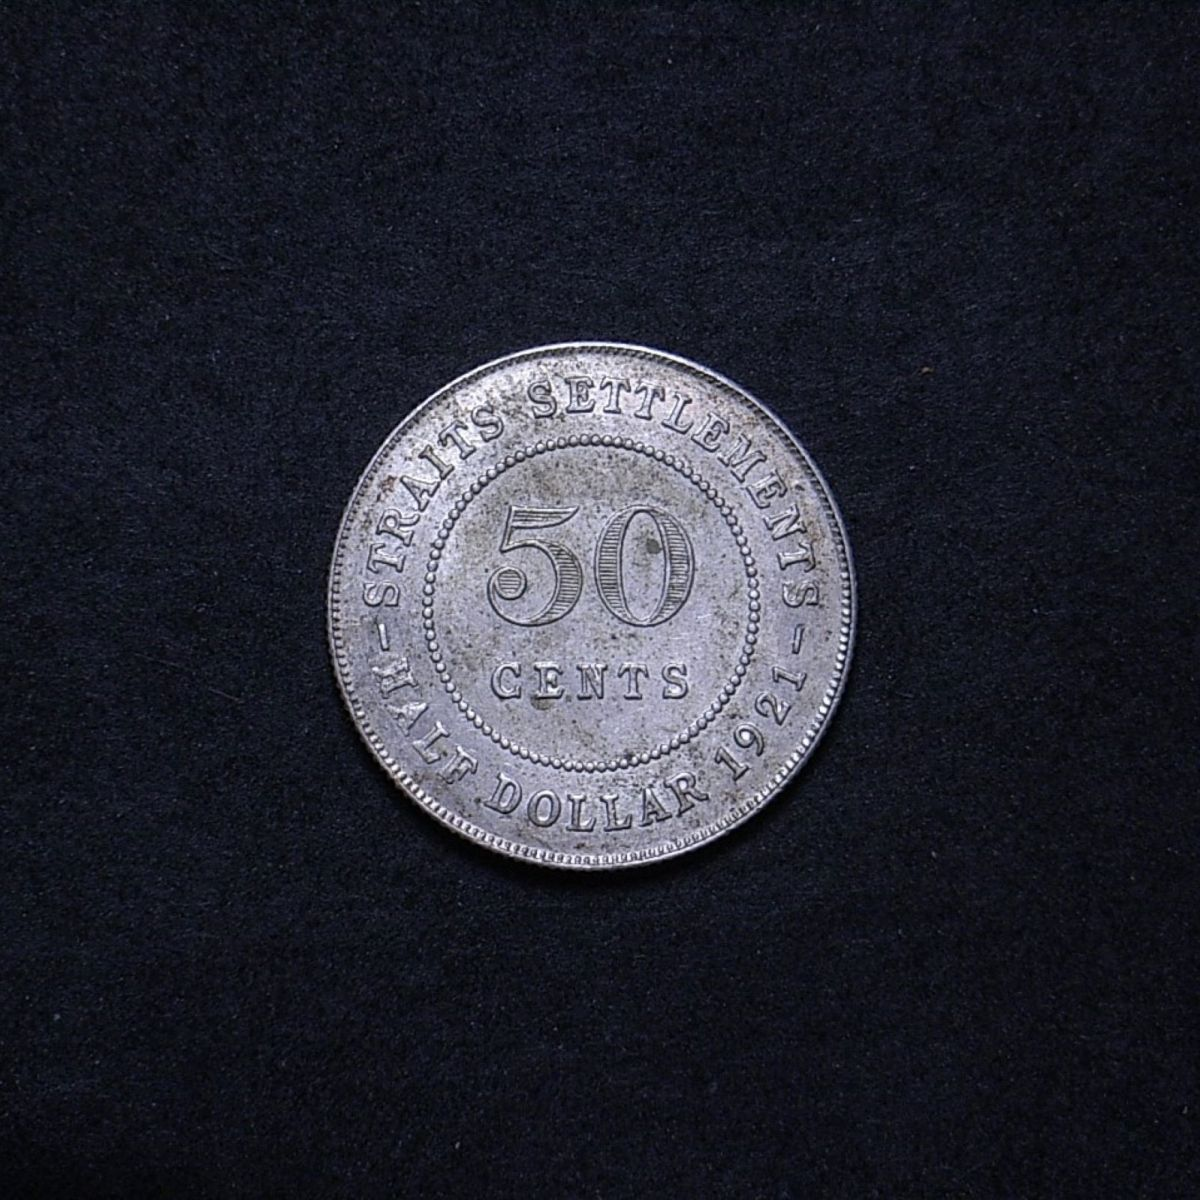 Straits Settlements 50 cents 1921 reverse showing overall appearance